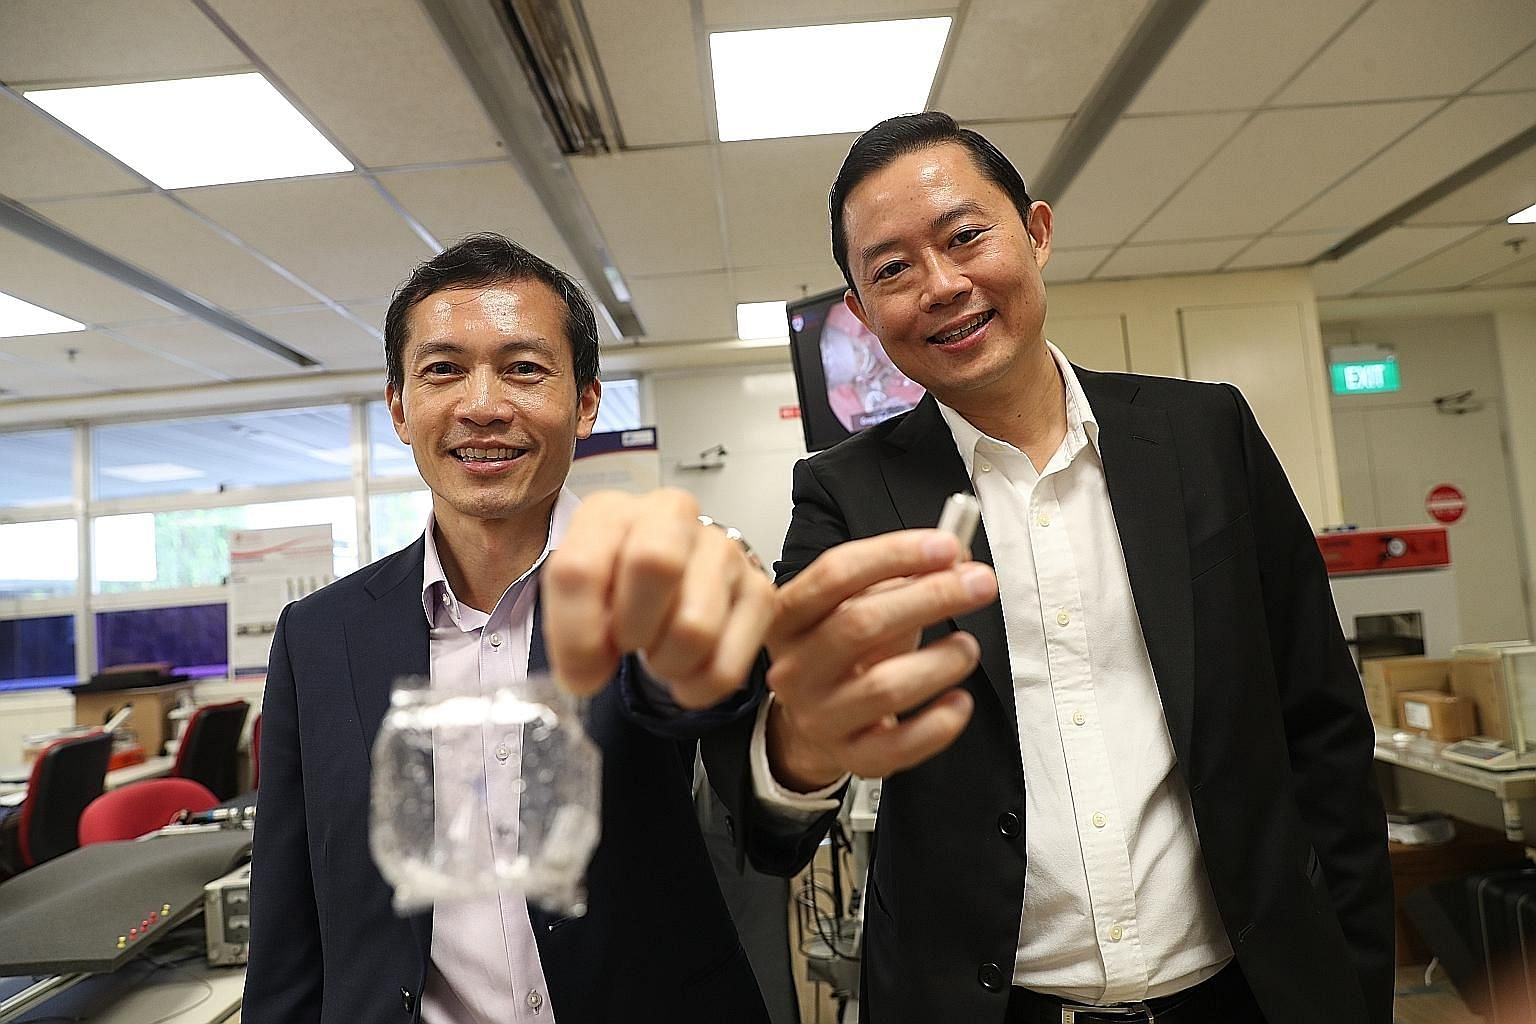 Professor Lawrence Ho (left), clinician-innovator at the National University Health System, with the expanded EndoPil capsule, and Professor Louis Phee, dean of engineering at Nanyang Technological University, with the pre-inflated capsule that is de